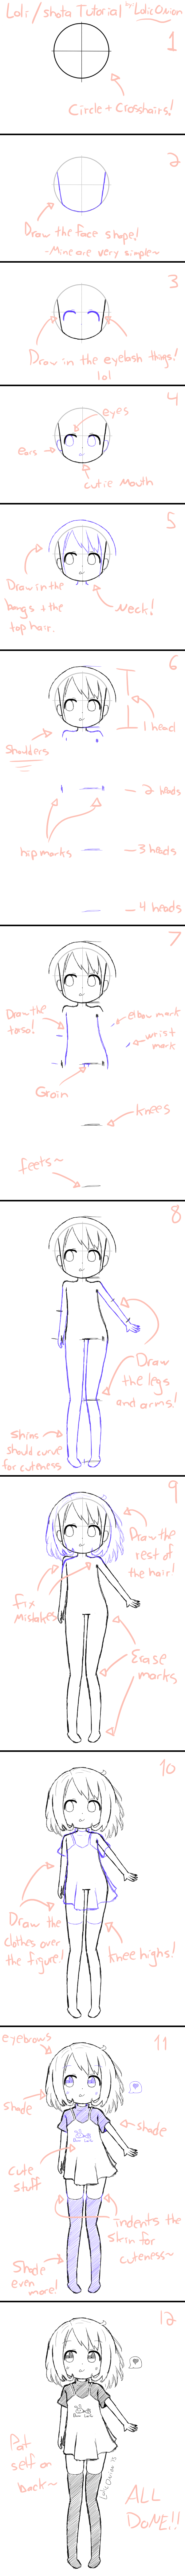 How To Draw A Loli Shota Tutorial By Loliconion On Deviantart